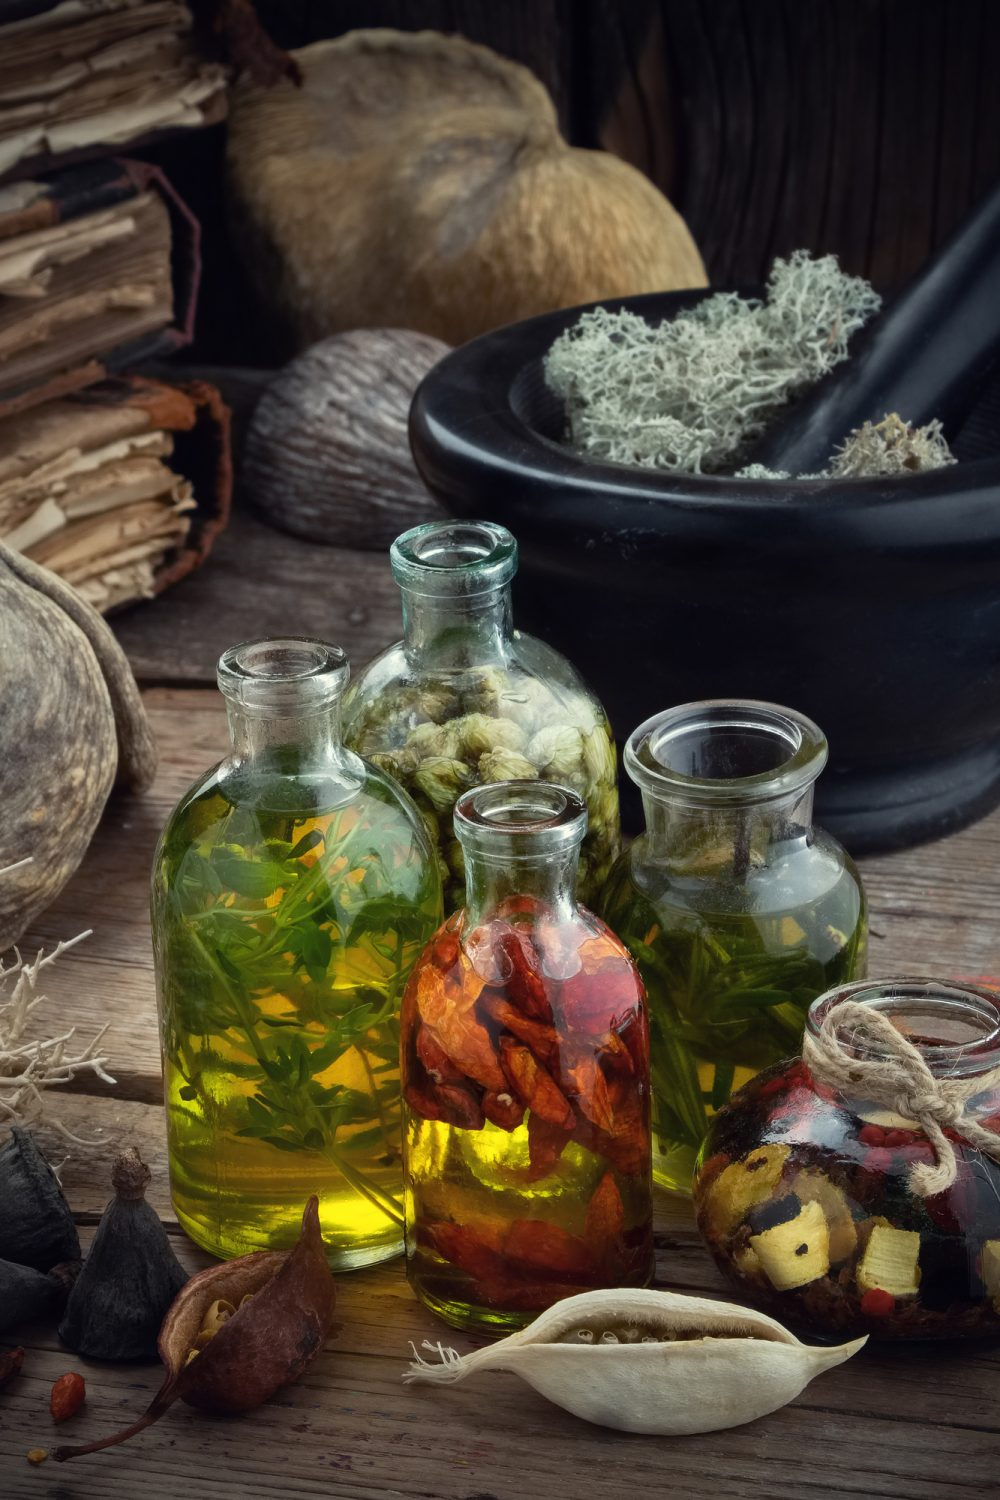 Homemade Herbal Massage Oils for Pain and Stiffness